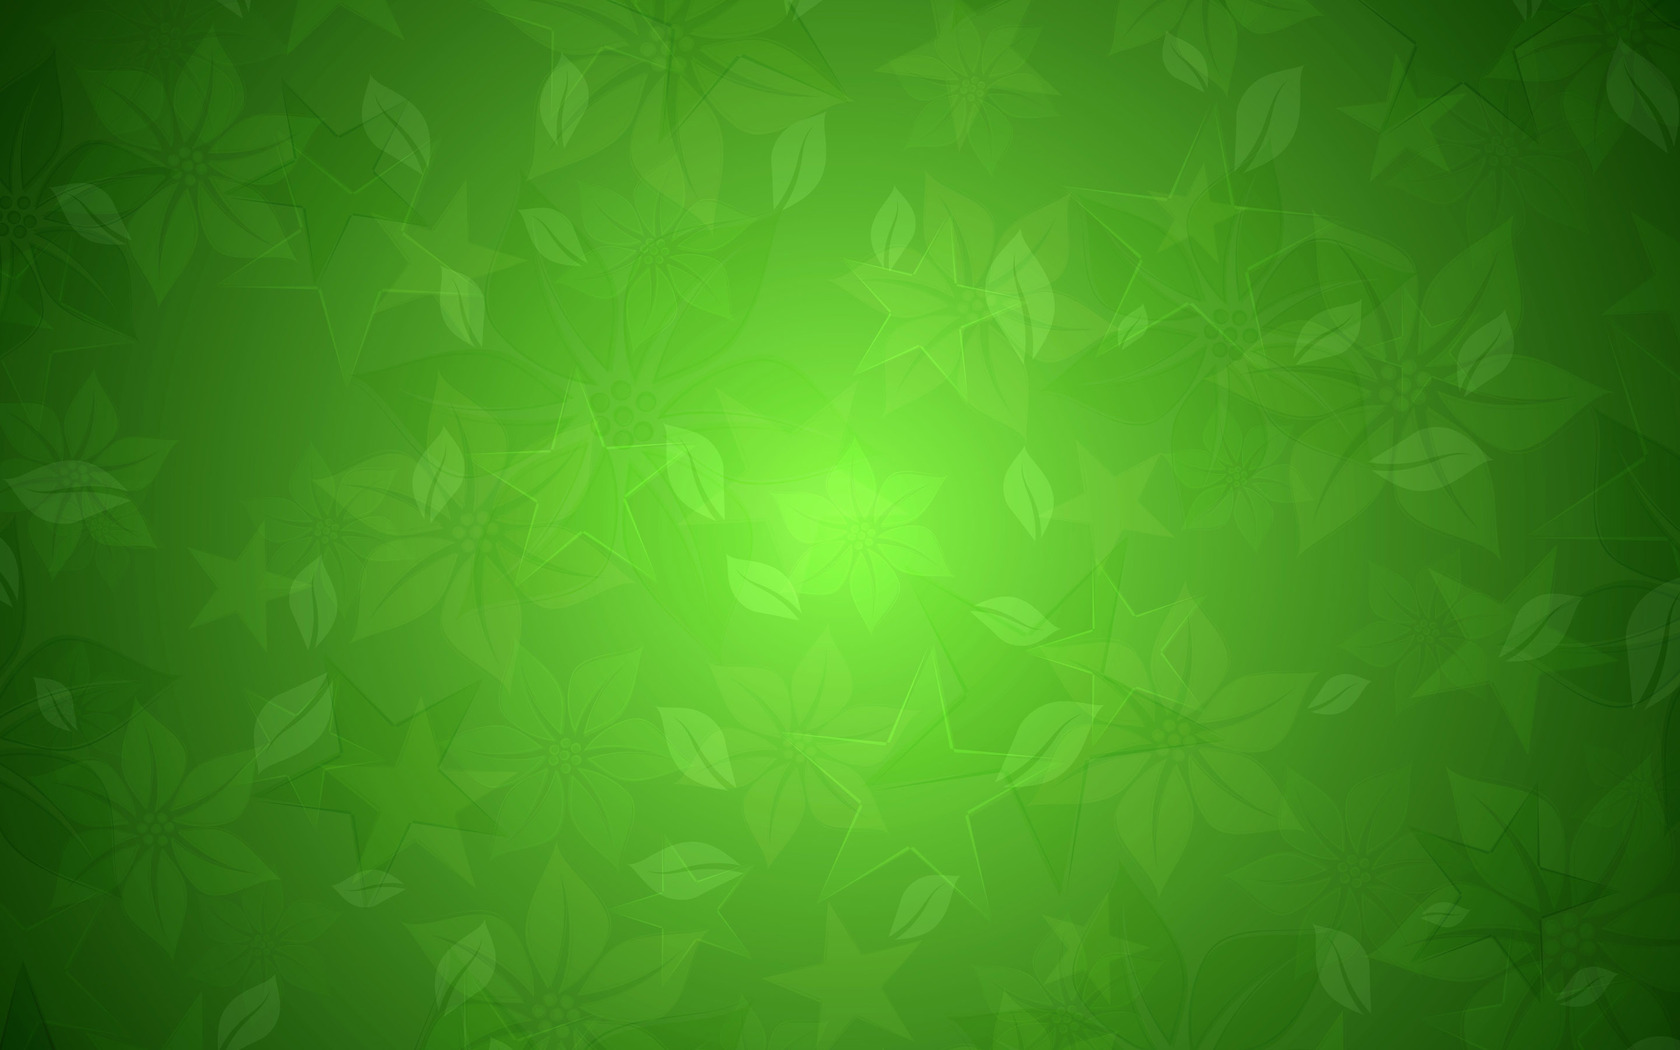 Download 44 HD Green Wallpapers for Windows and Mac 1680x1050